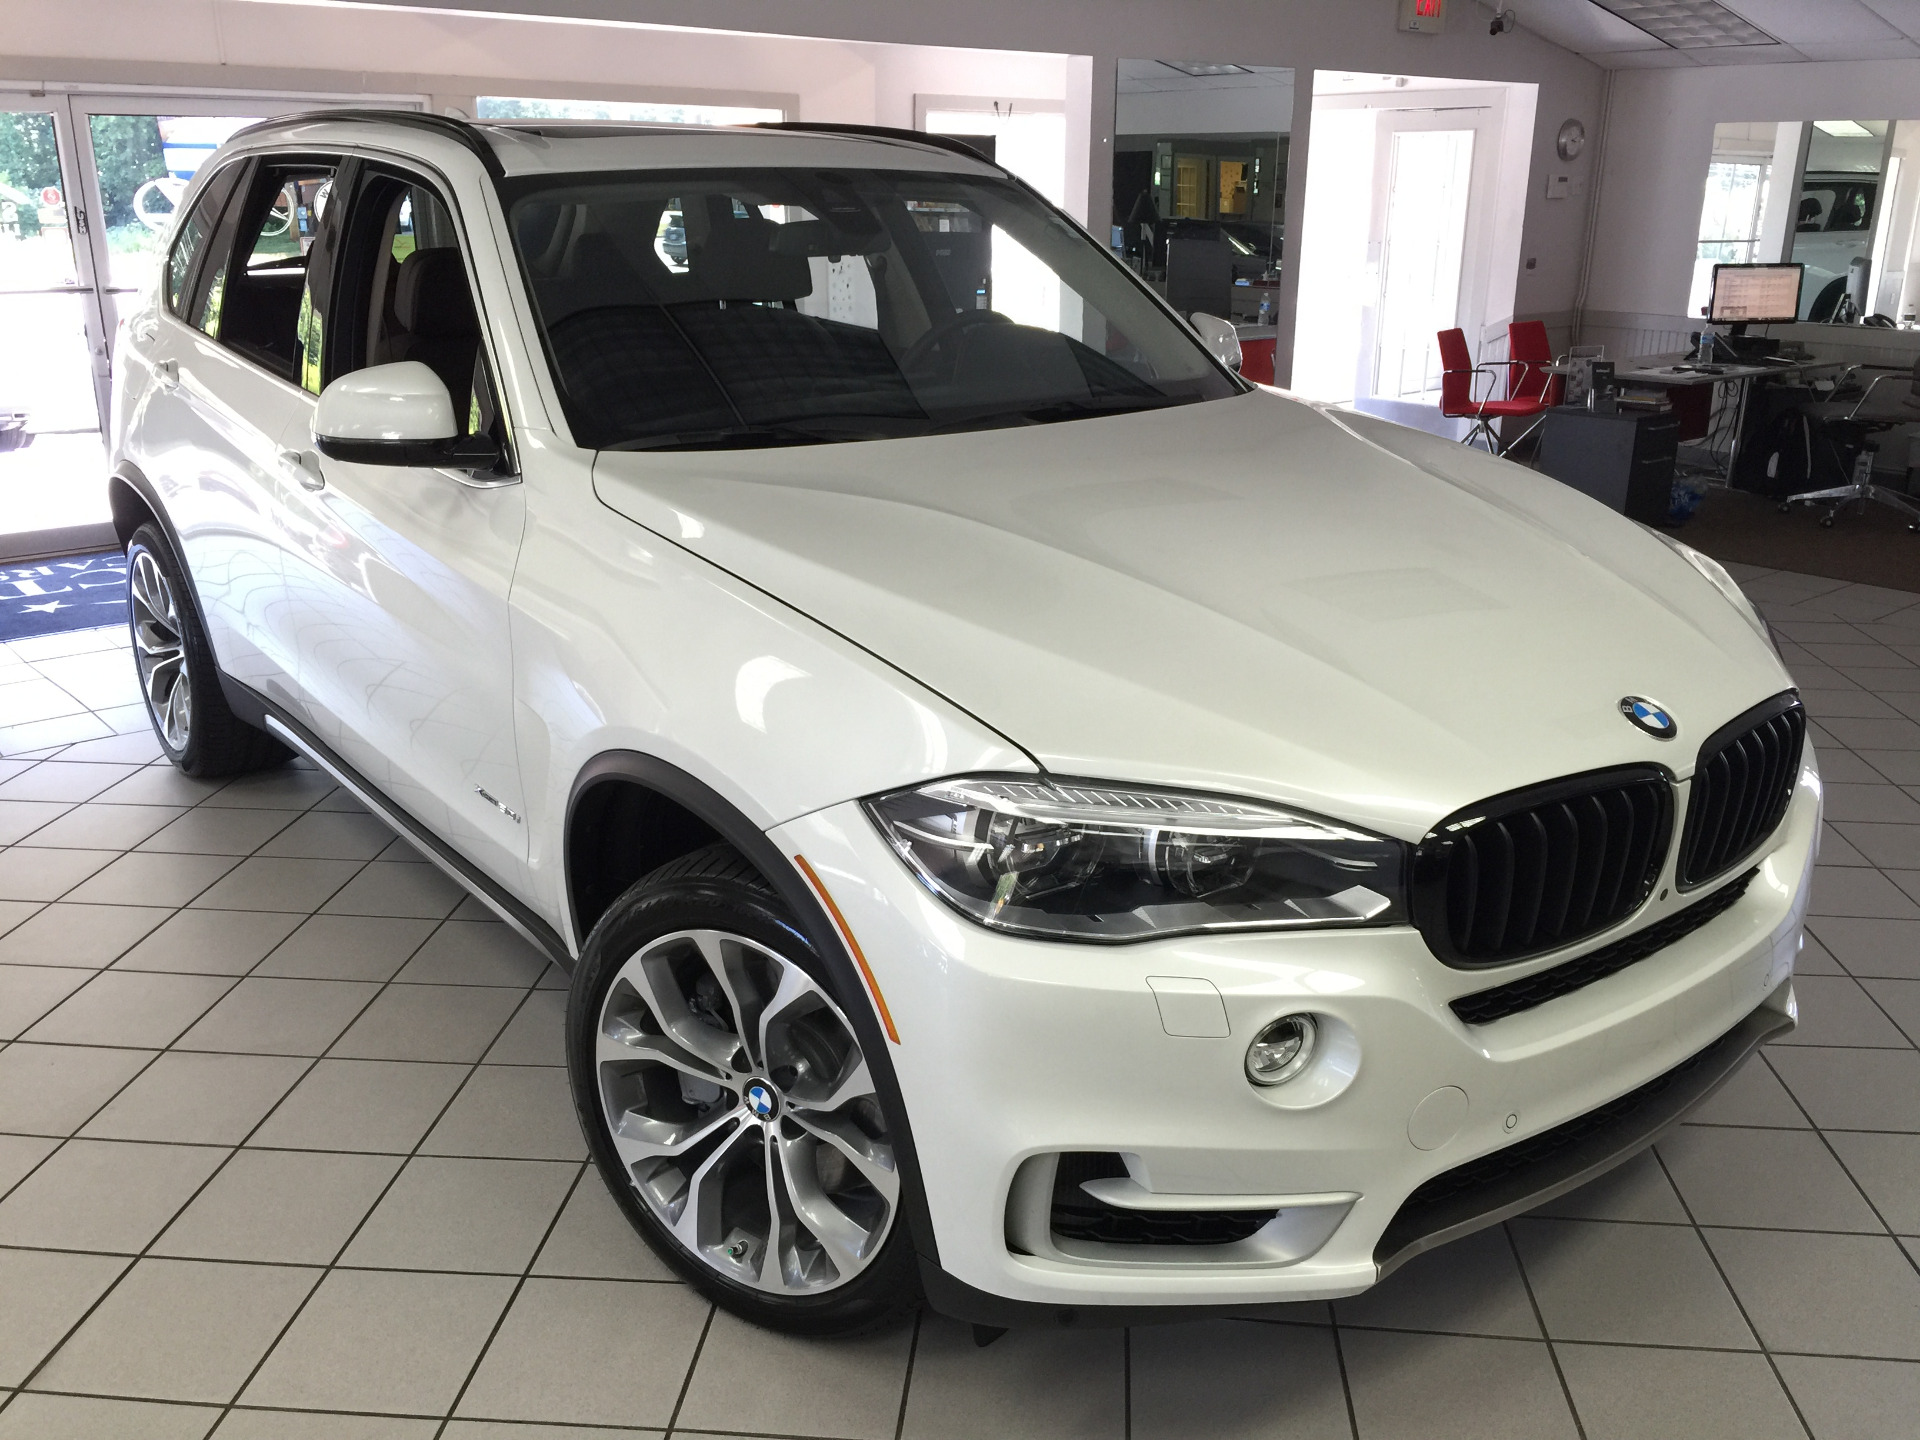 used 2015 bmw x5 xdrive50i marietta ga. Black Bedroom Furniture Sets. Home Design Ideas